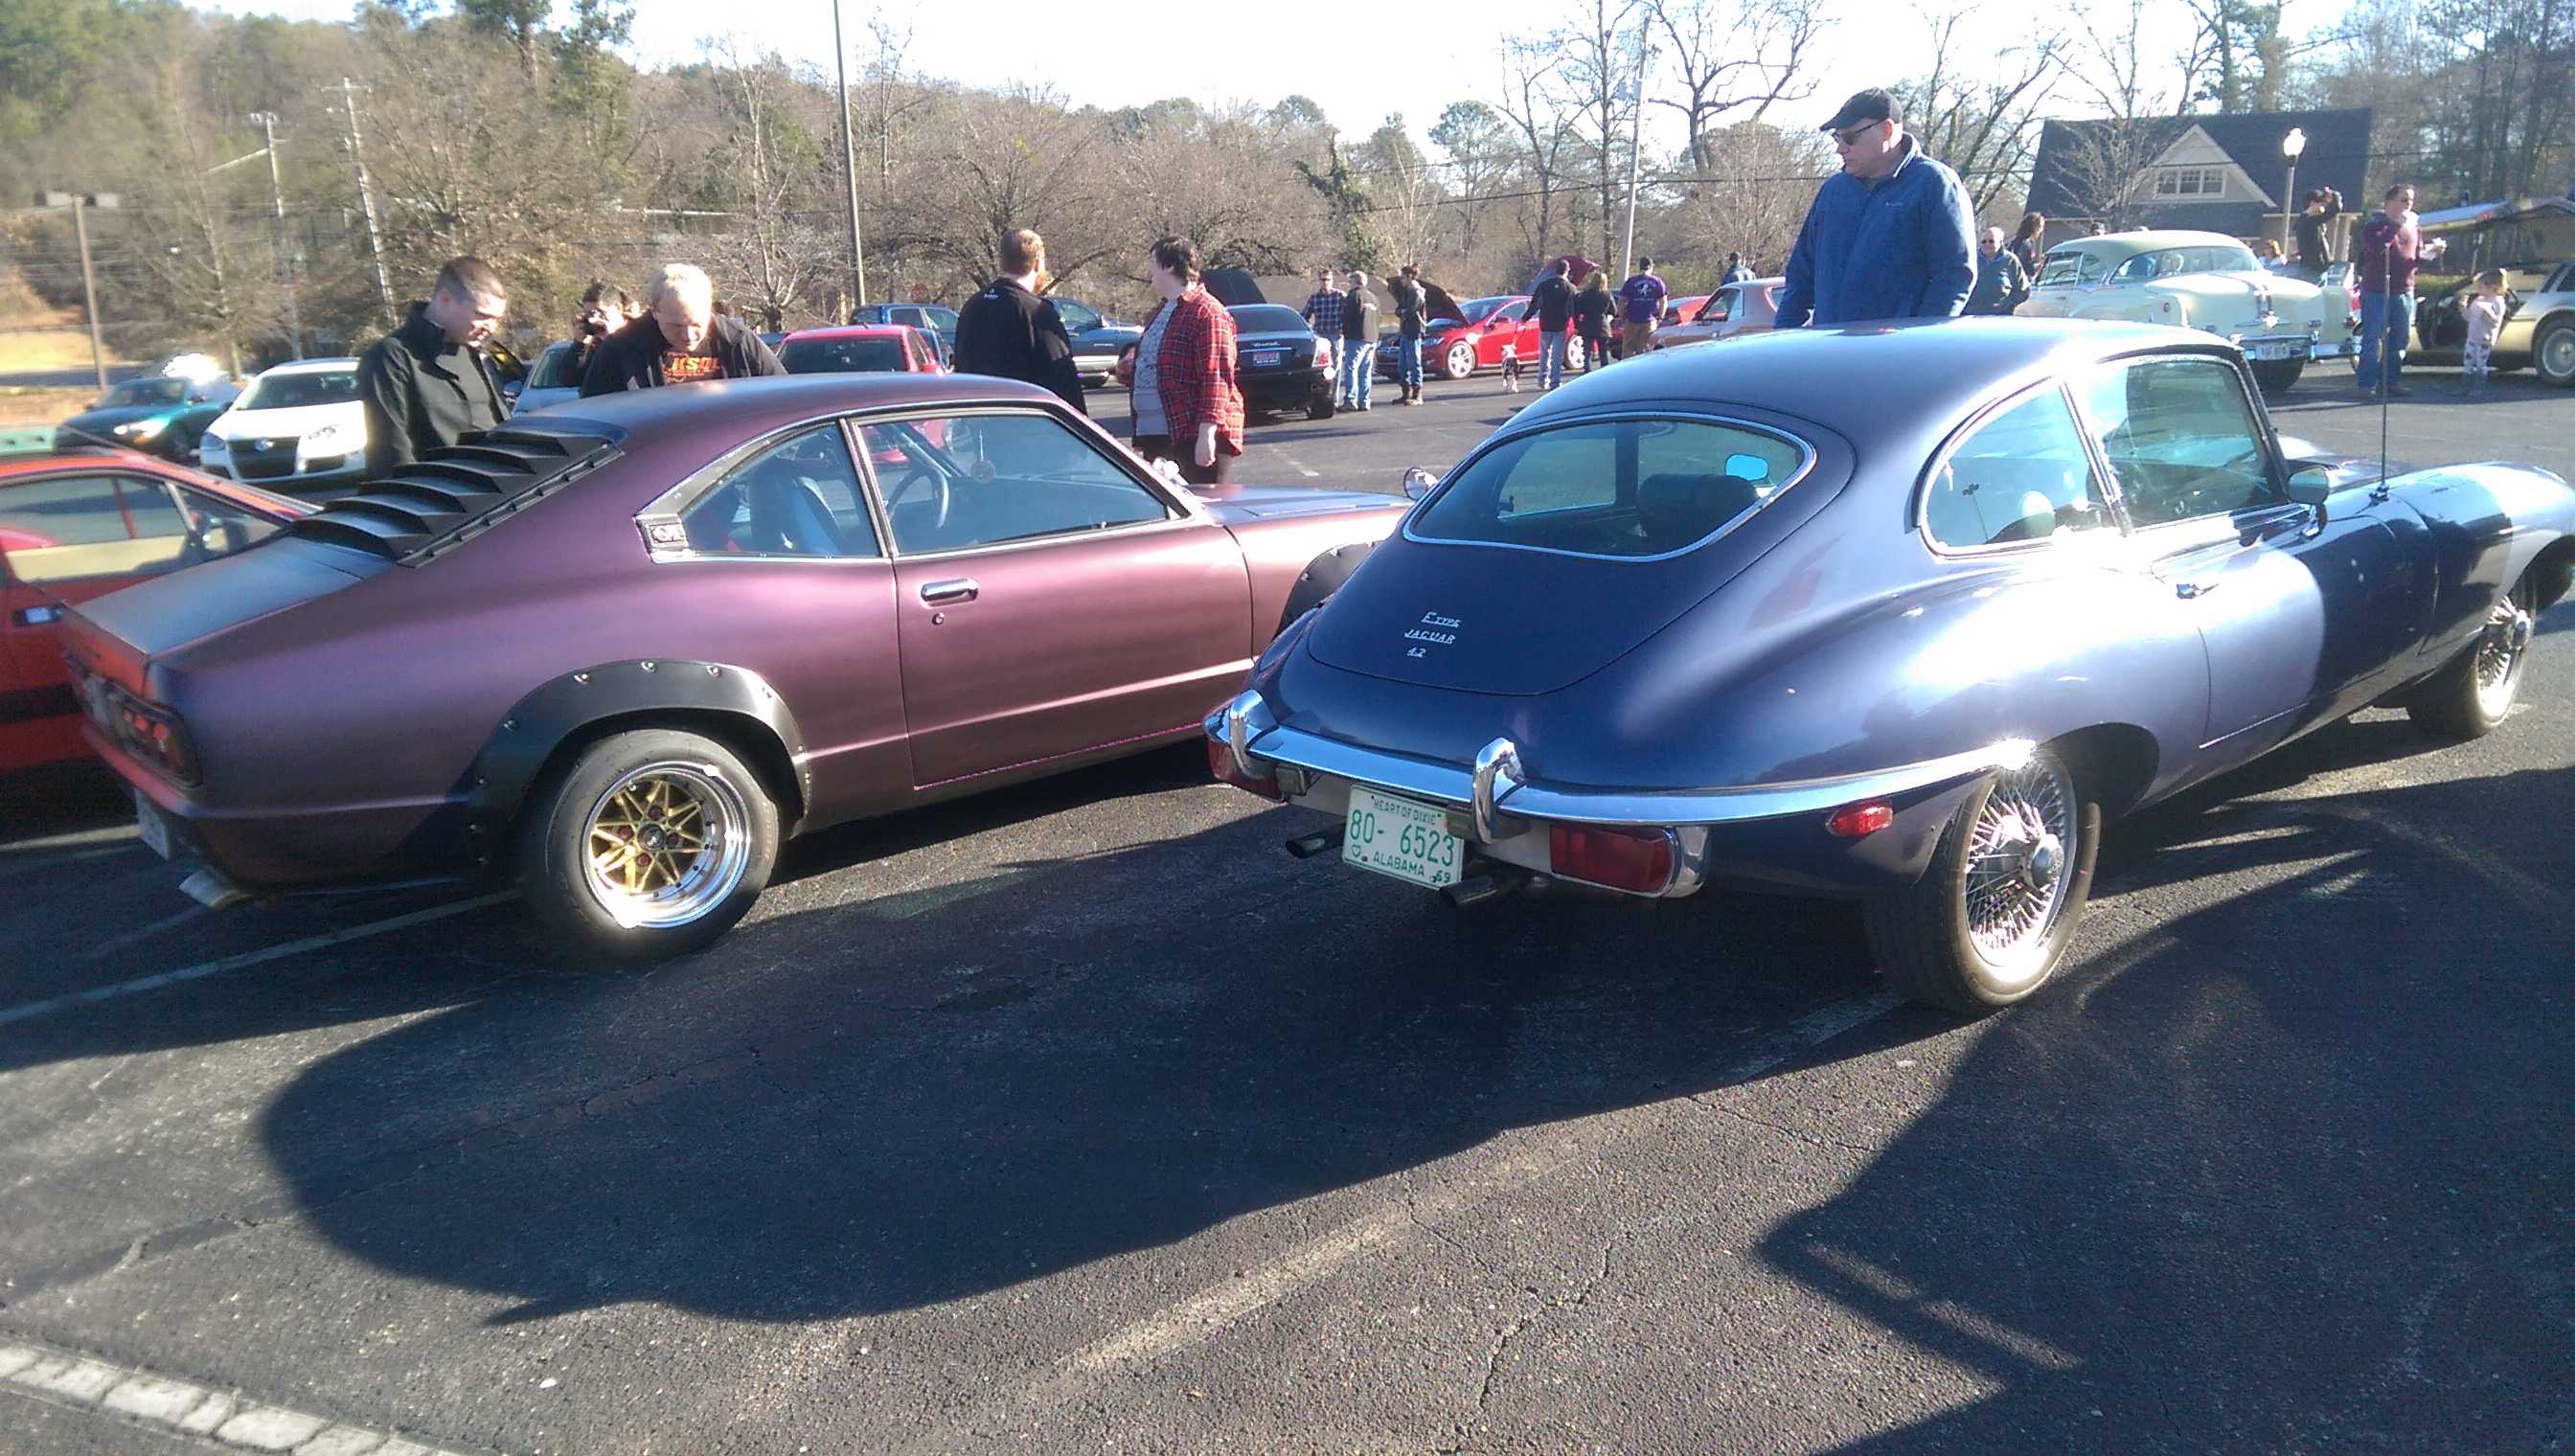 The Vehicles of Cars and Coffee in Alabama